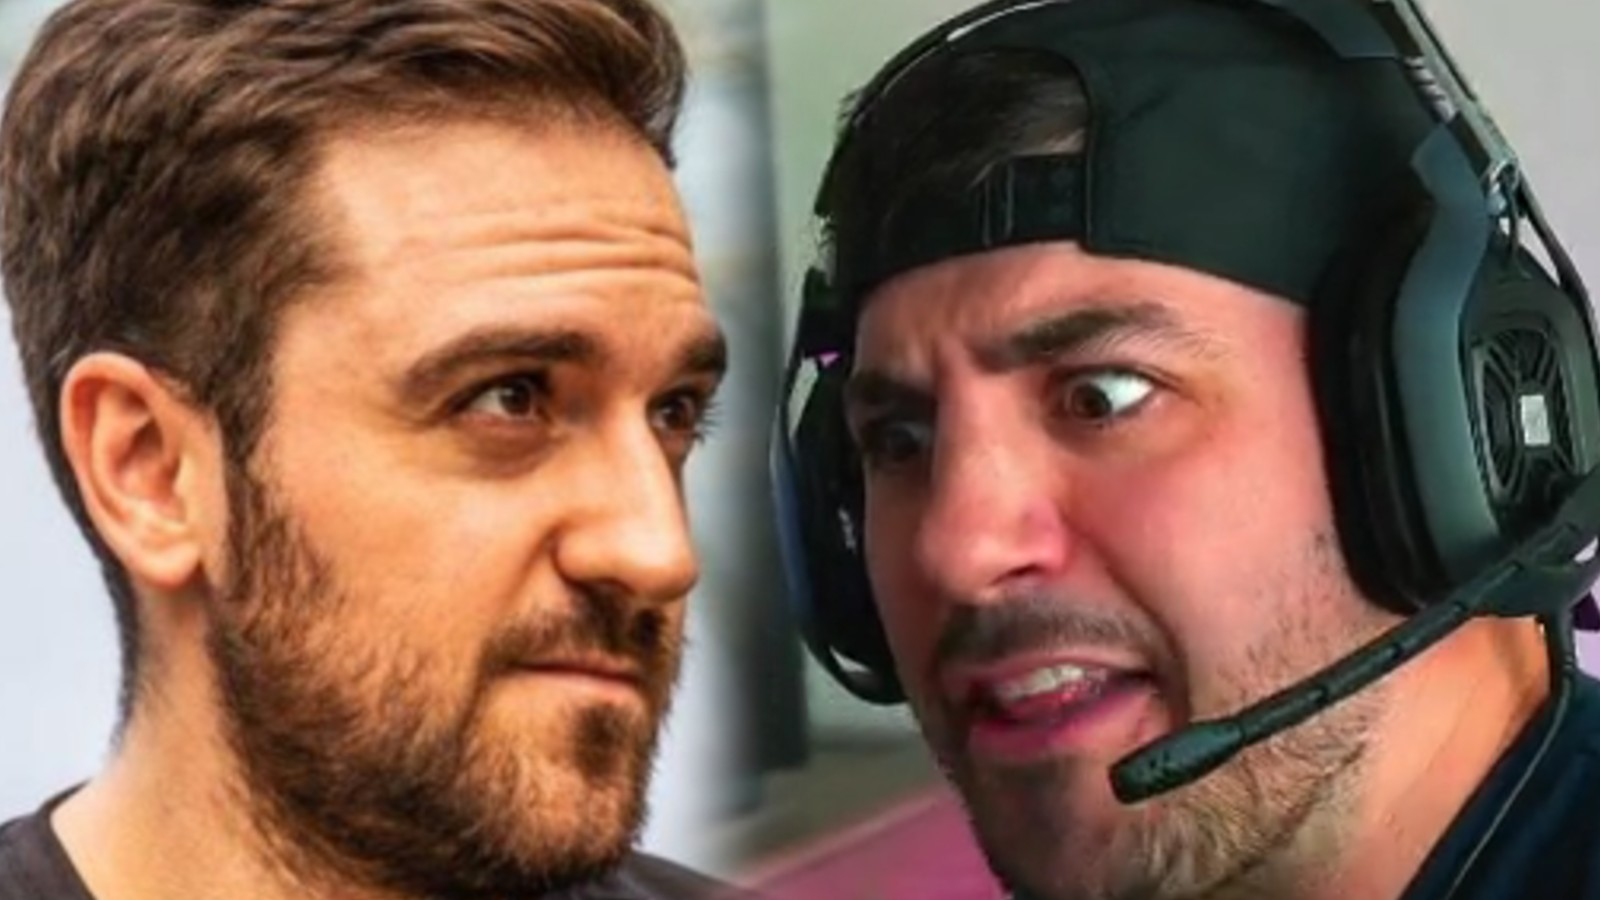 ocelote and nickmercs